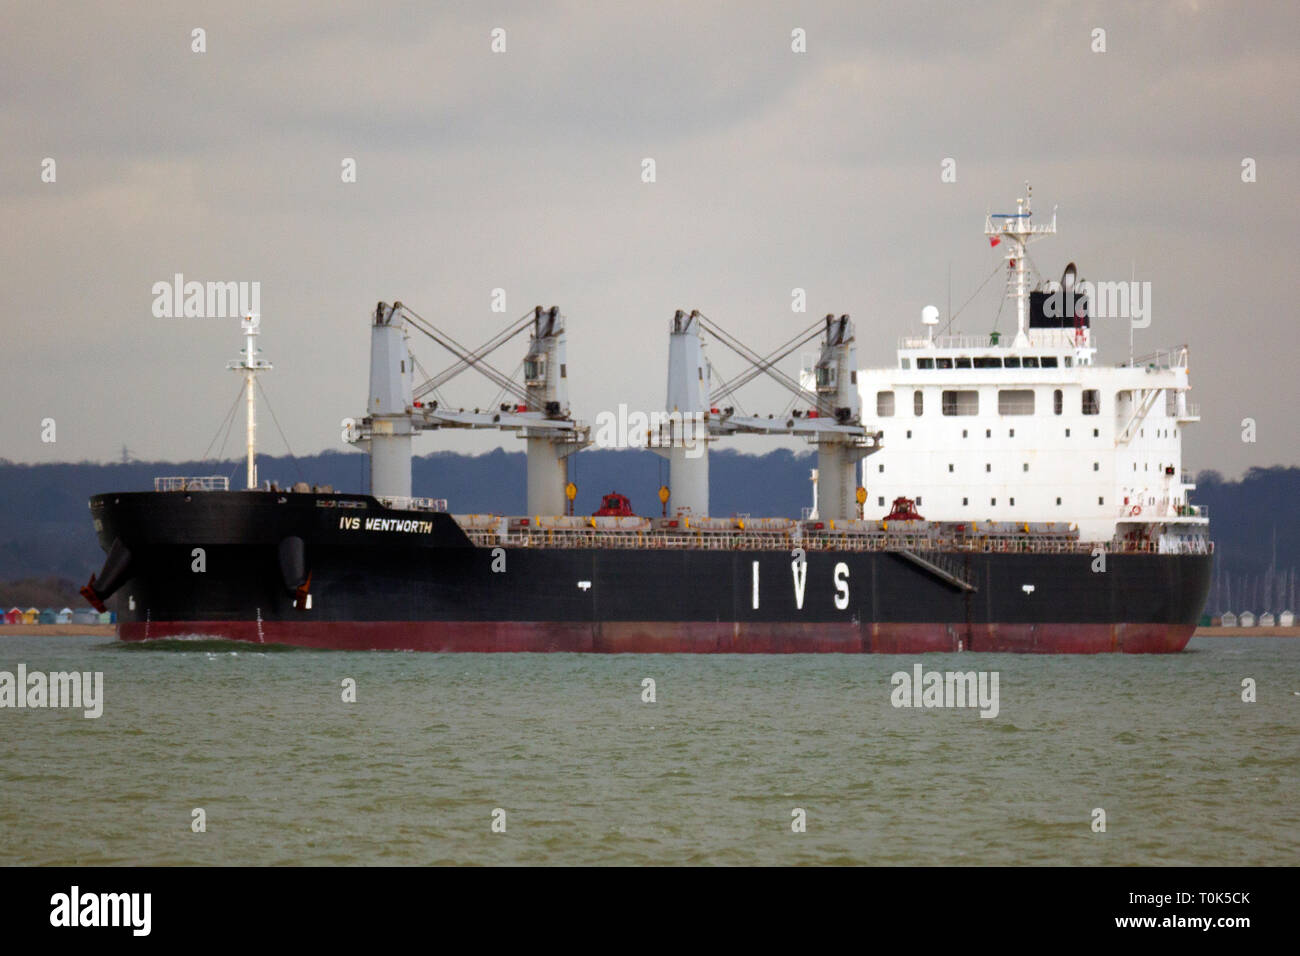 Ship,Shipping,Bulk,Carrier,IVS,Wentworth,Singapore,flag,home,port,leaving Southampton,Port,entering,The Solent,Cowes,Isle of Wight, England,UK, - Stock Image